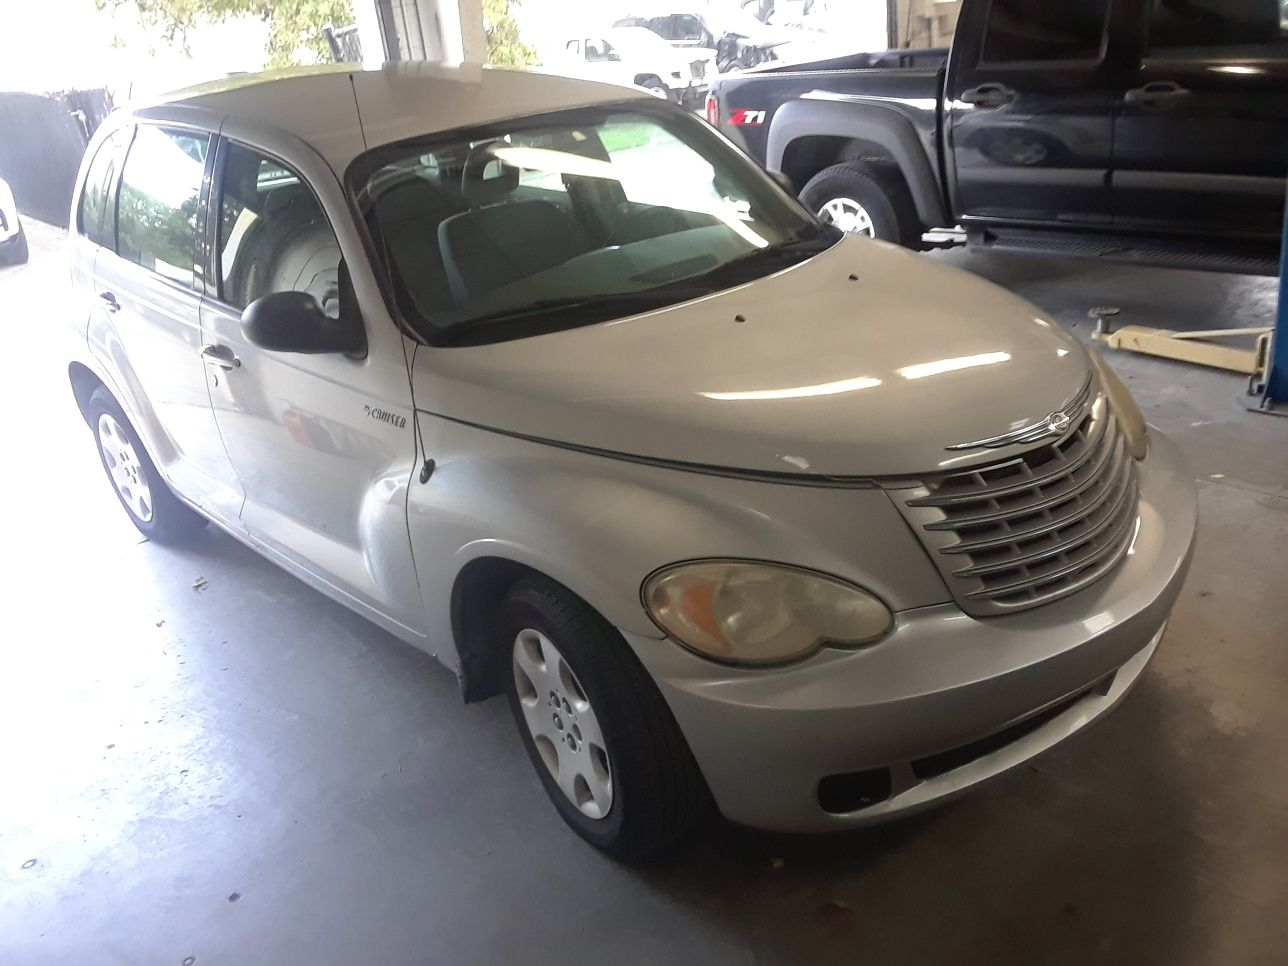 Used 2006 Chrysler PT Cruiser for sale in West Palm Beach